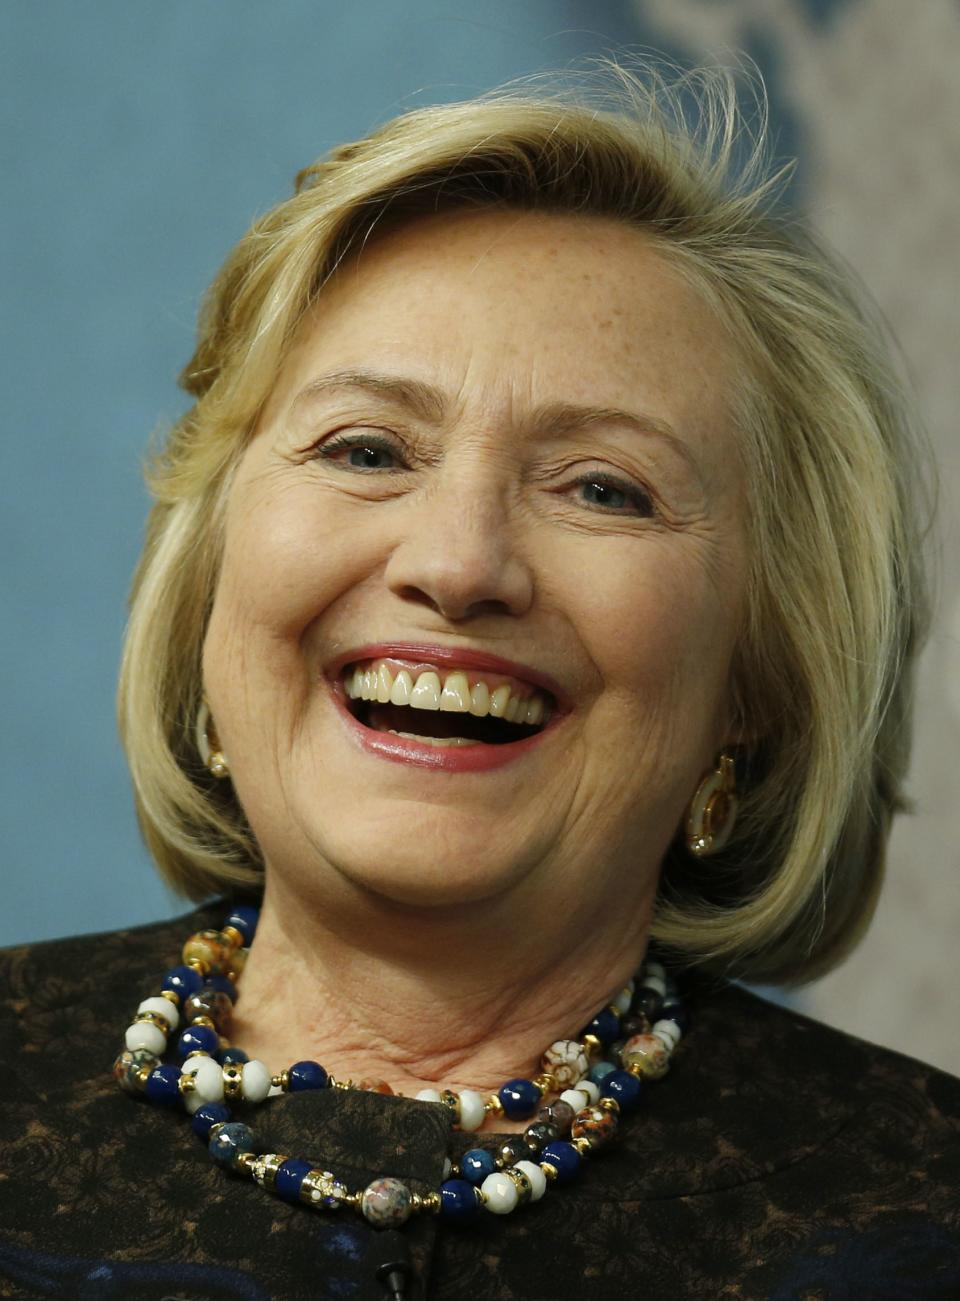 Former U.S. Secretary of State Hillary Clinton laughs as she arrives for an event at Chatham House in London, Friday, Oct. 11, 2013. Clinton is to be presented with the institute's annual award in recognition of her contribution to the significant improvement of international relations, according to the institution. (AP Photo/Lefteris Pitarakis)